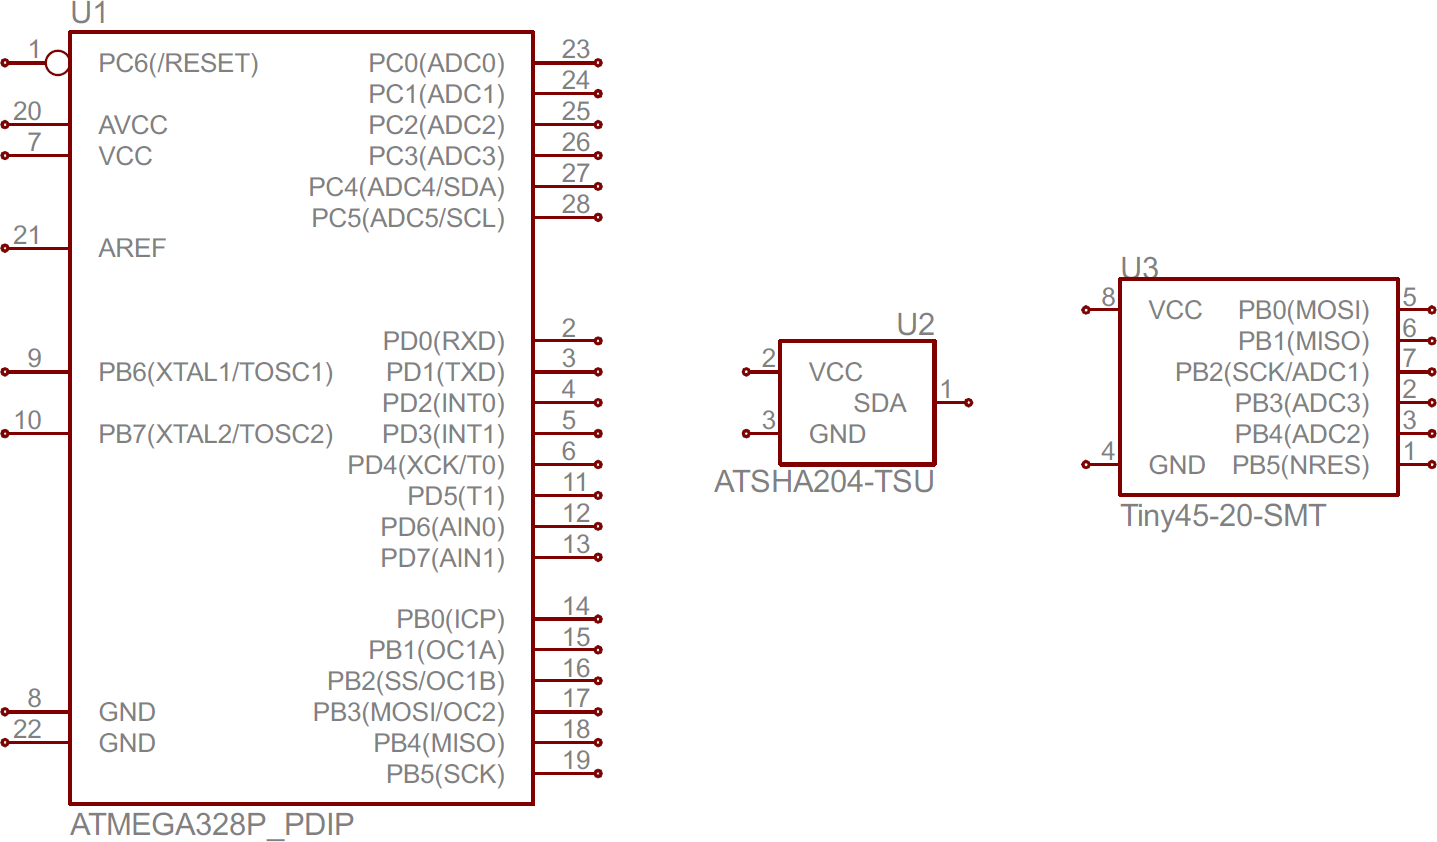 ATmega328 ATSHA204 and ATtiny45 IC symbols